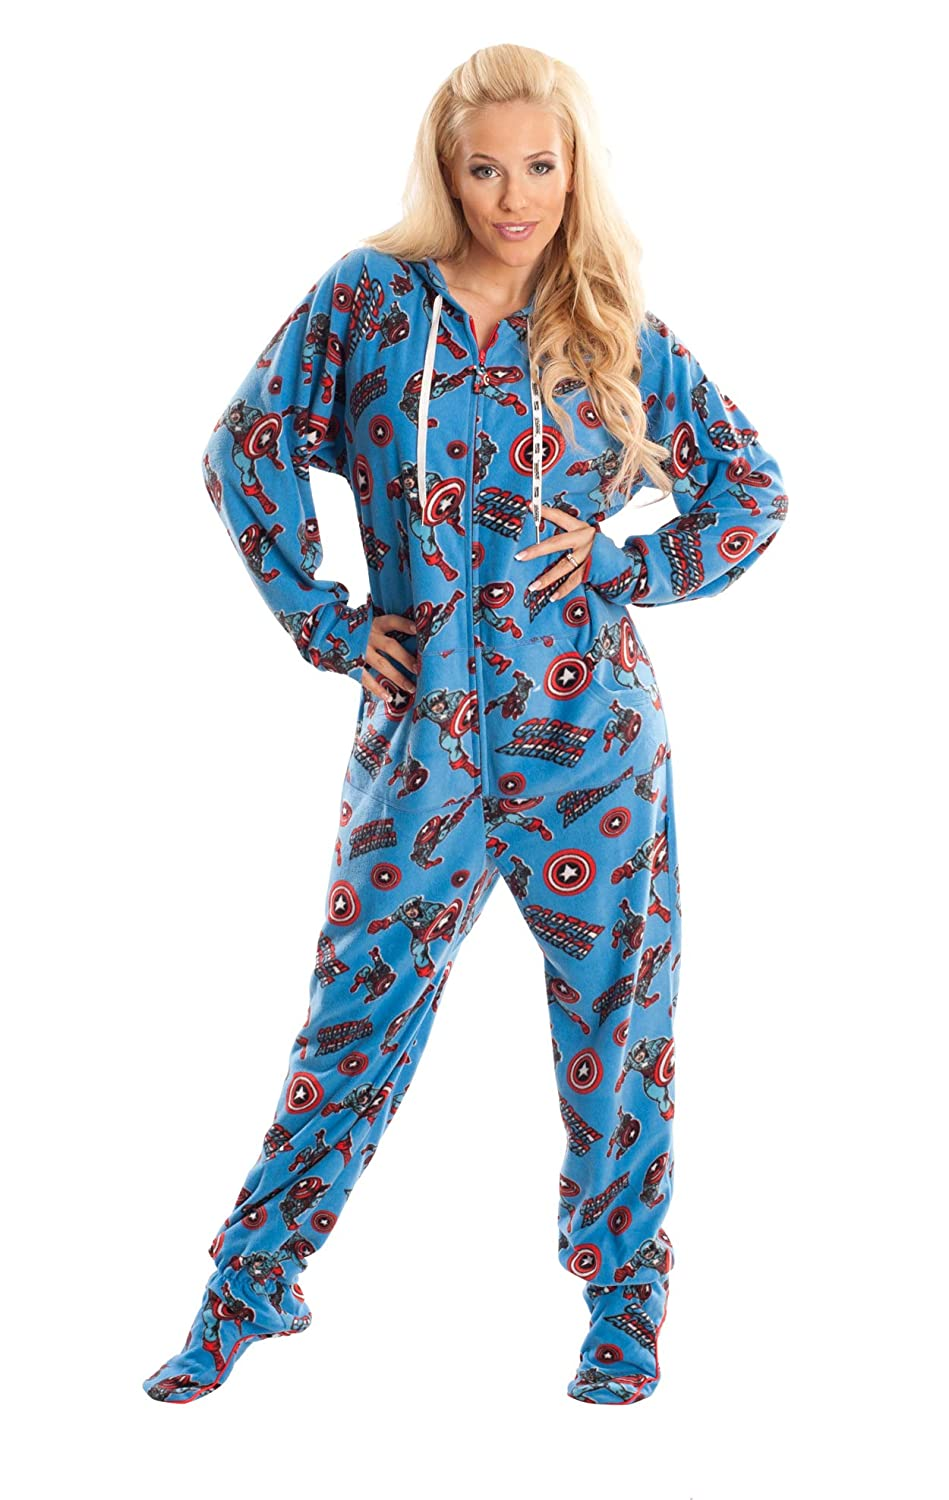 8037063a8 Captain America Marvel Blue Unisex Adult Footed Onesie Pajamas for ...